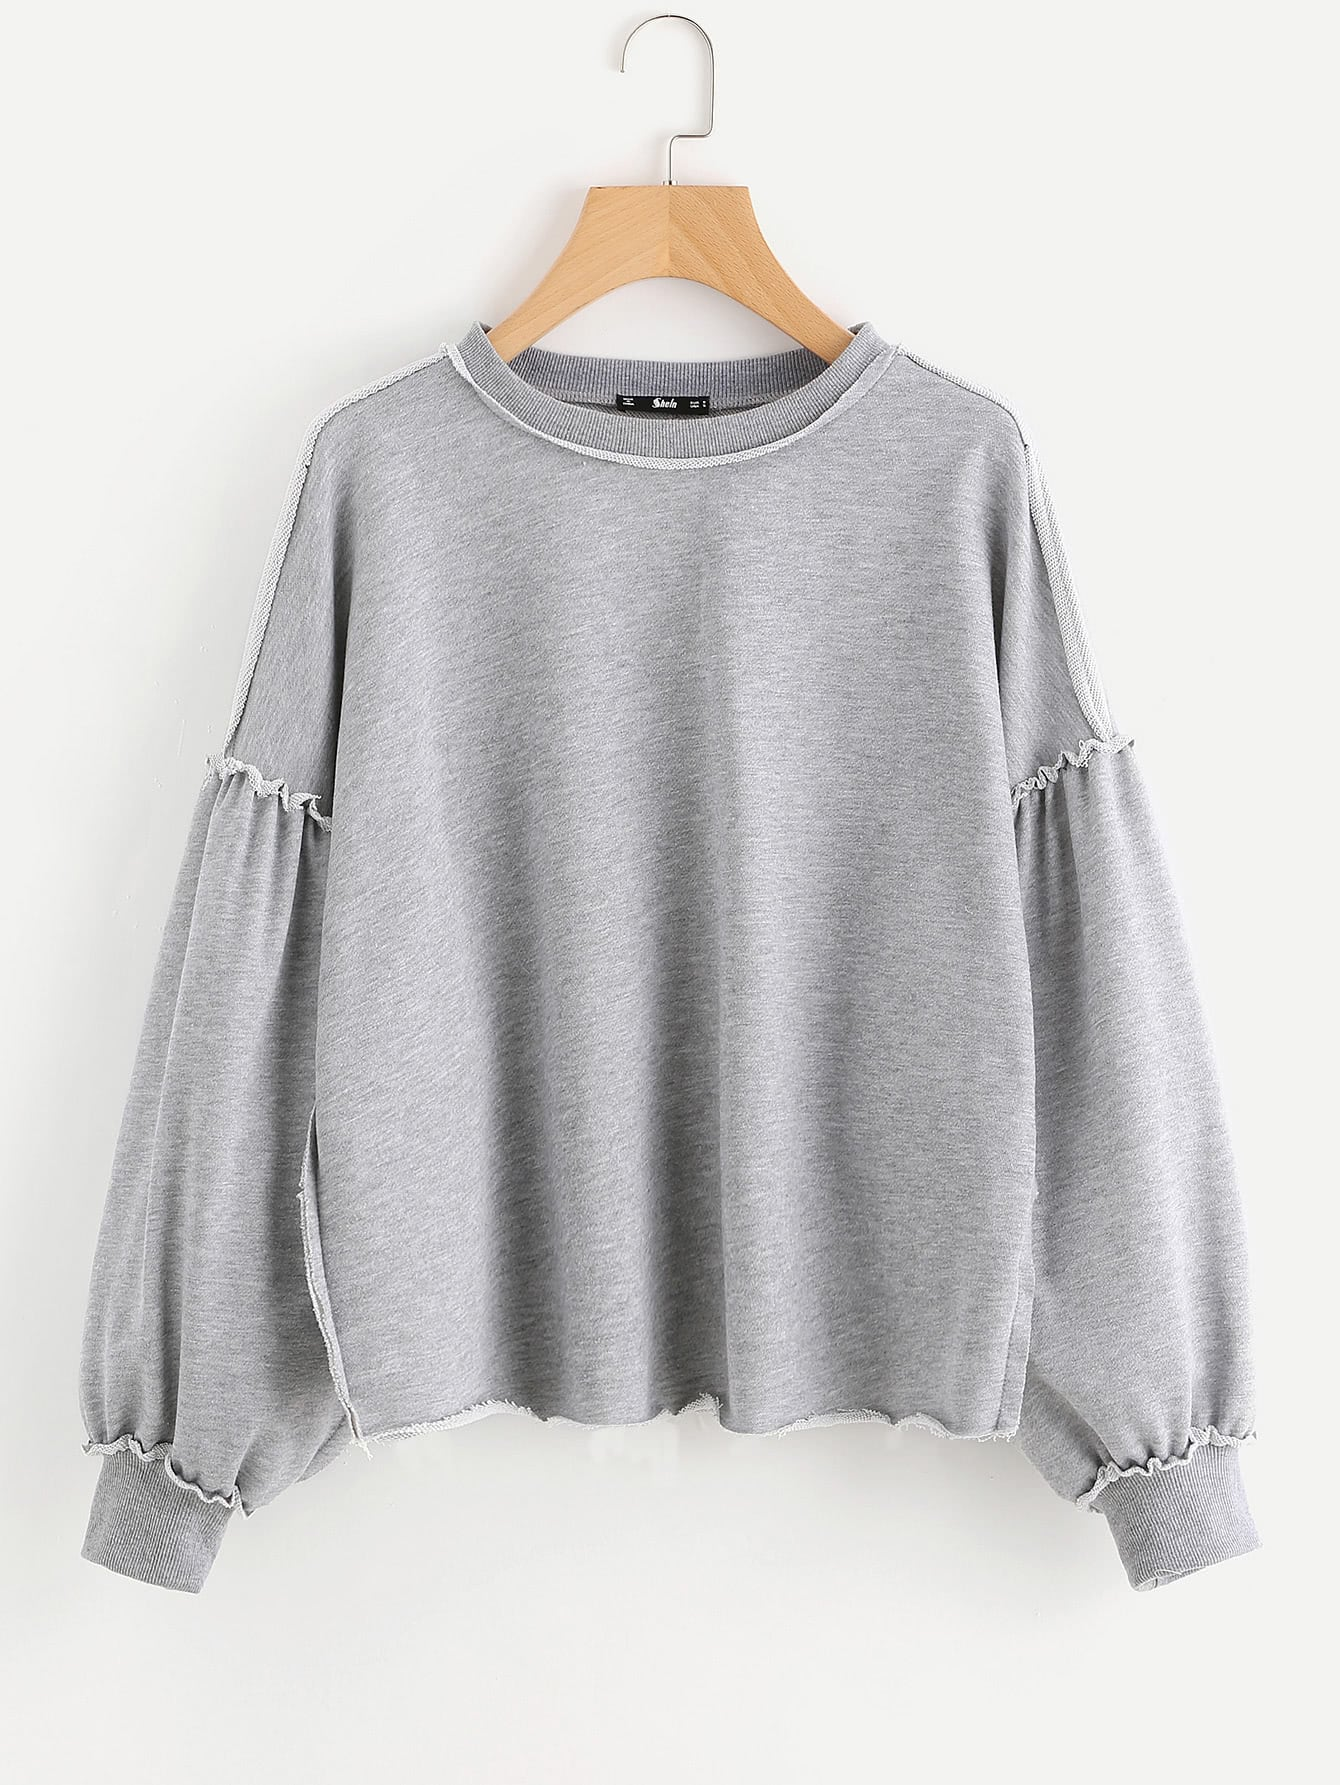 Raw Edge Drop Shoulder Heather Knit Sweatshirt drop shoulder crop sweatshirt